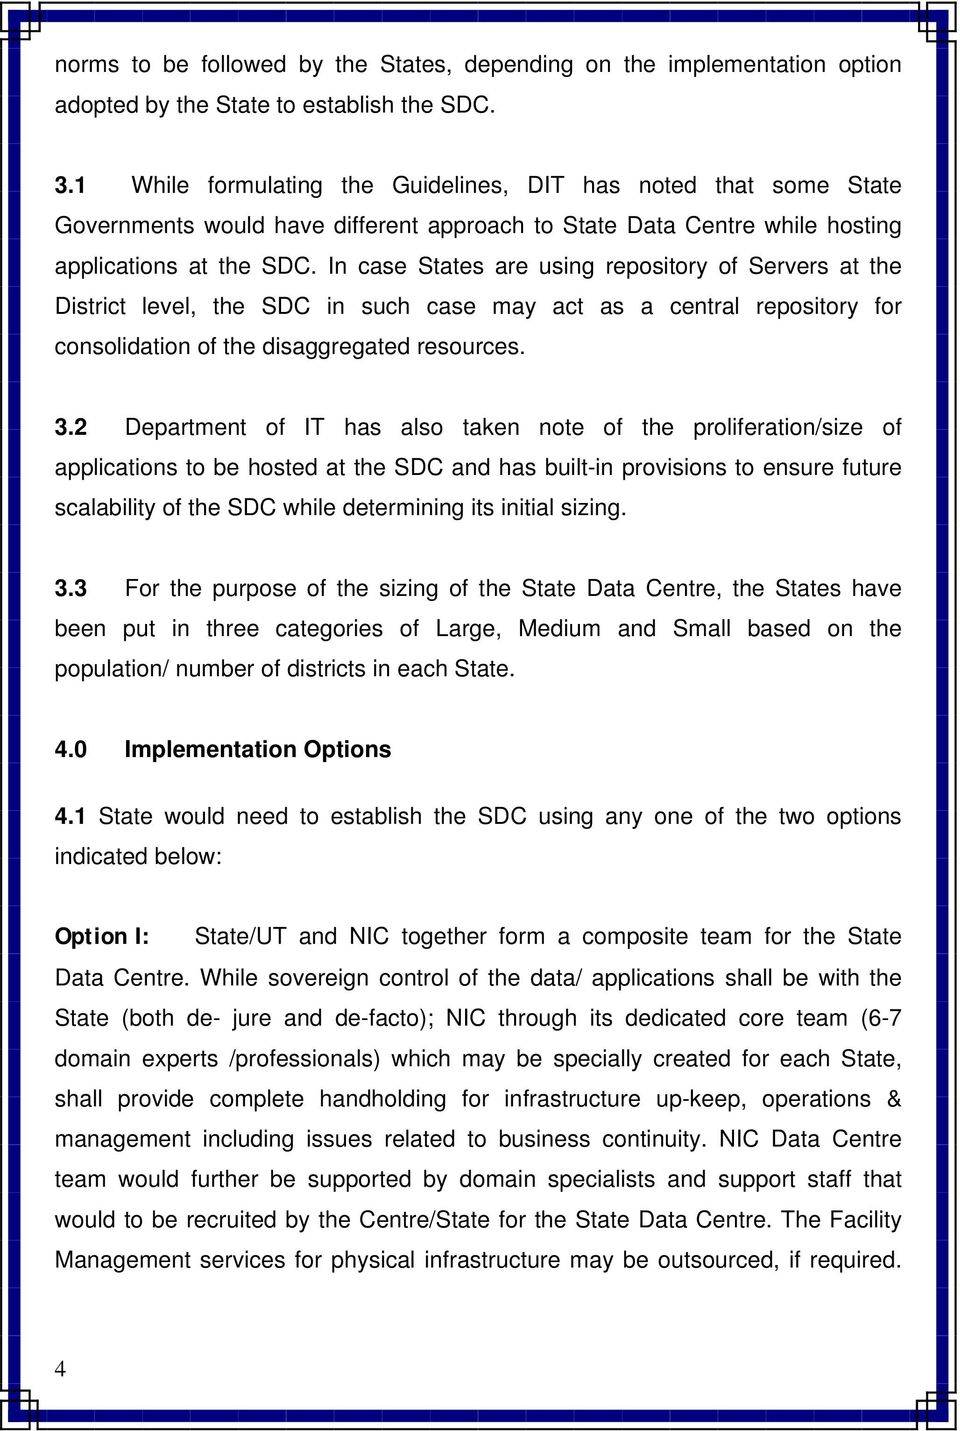 In case States are using repository of Servers at the District level, the SDC in such case may act as a central repository for consolidation of the disaggregated resources. 3.